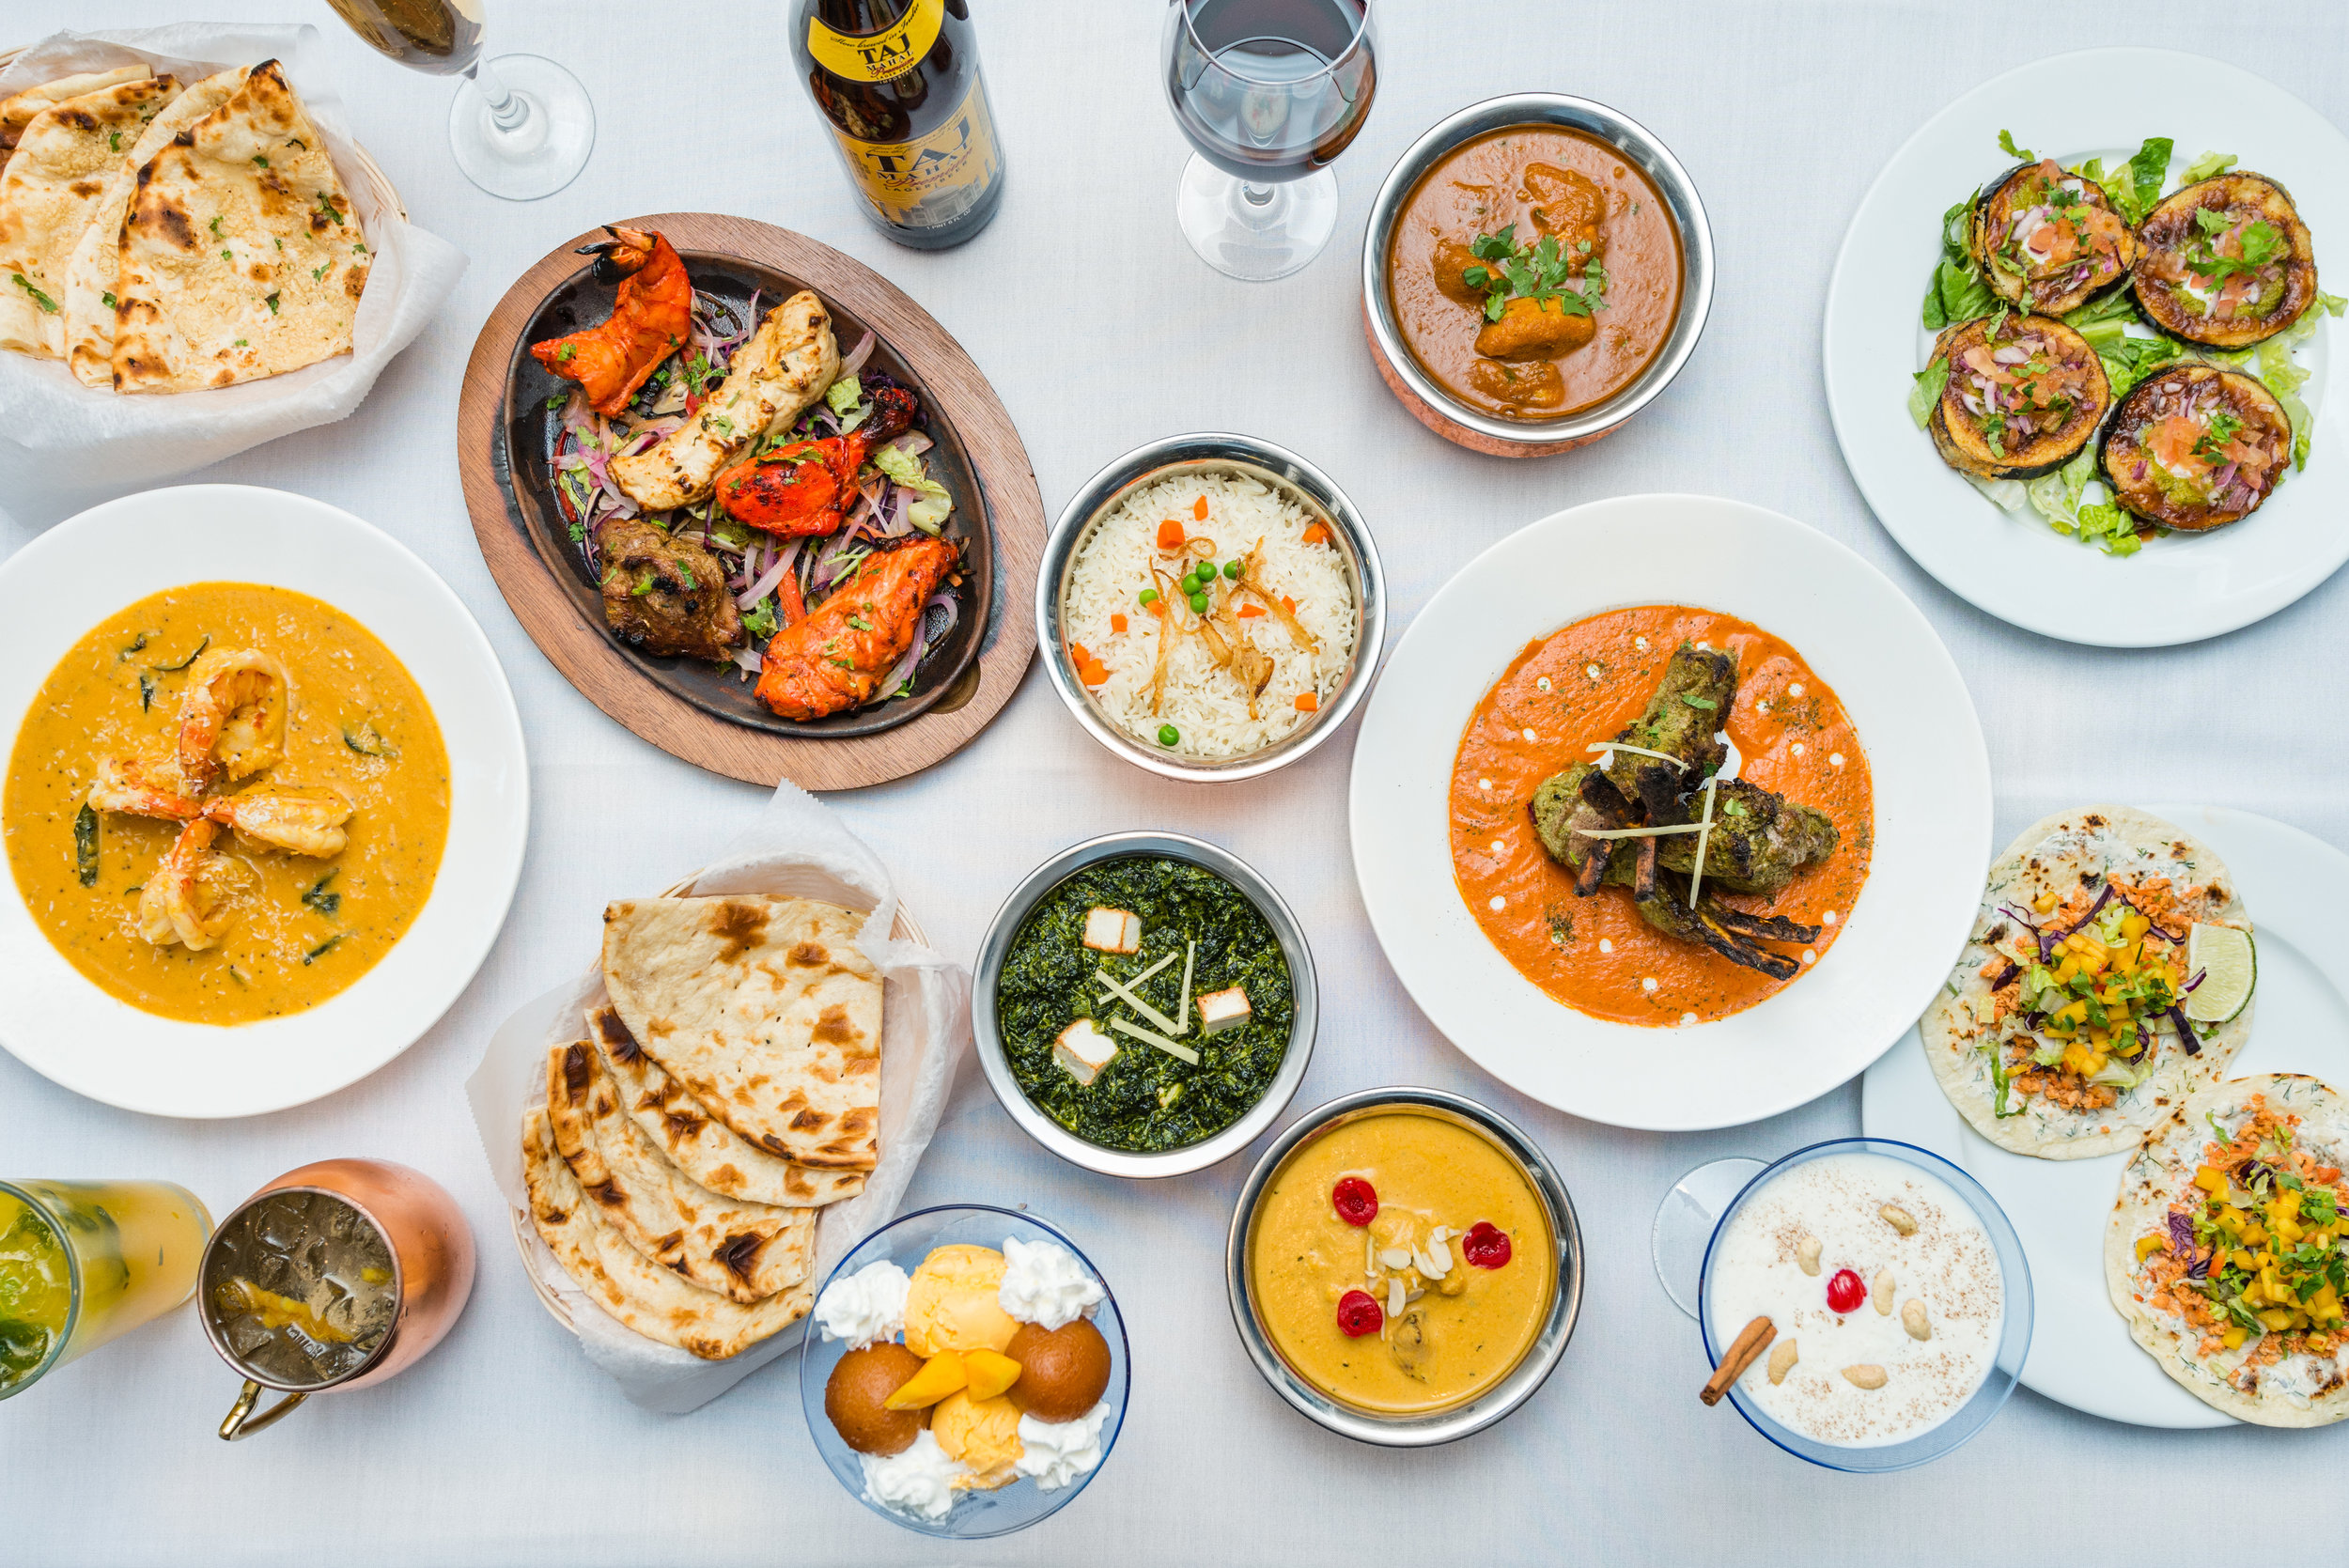 An Assortment of Delicious Dishes from the Indi-Q Menu